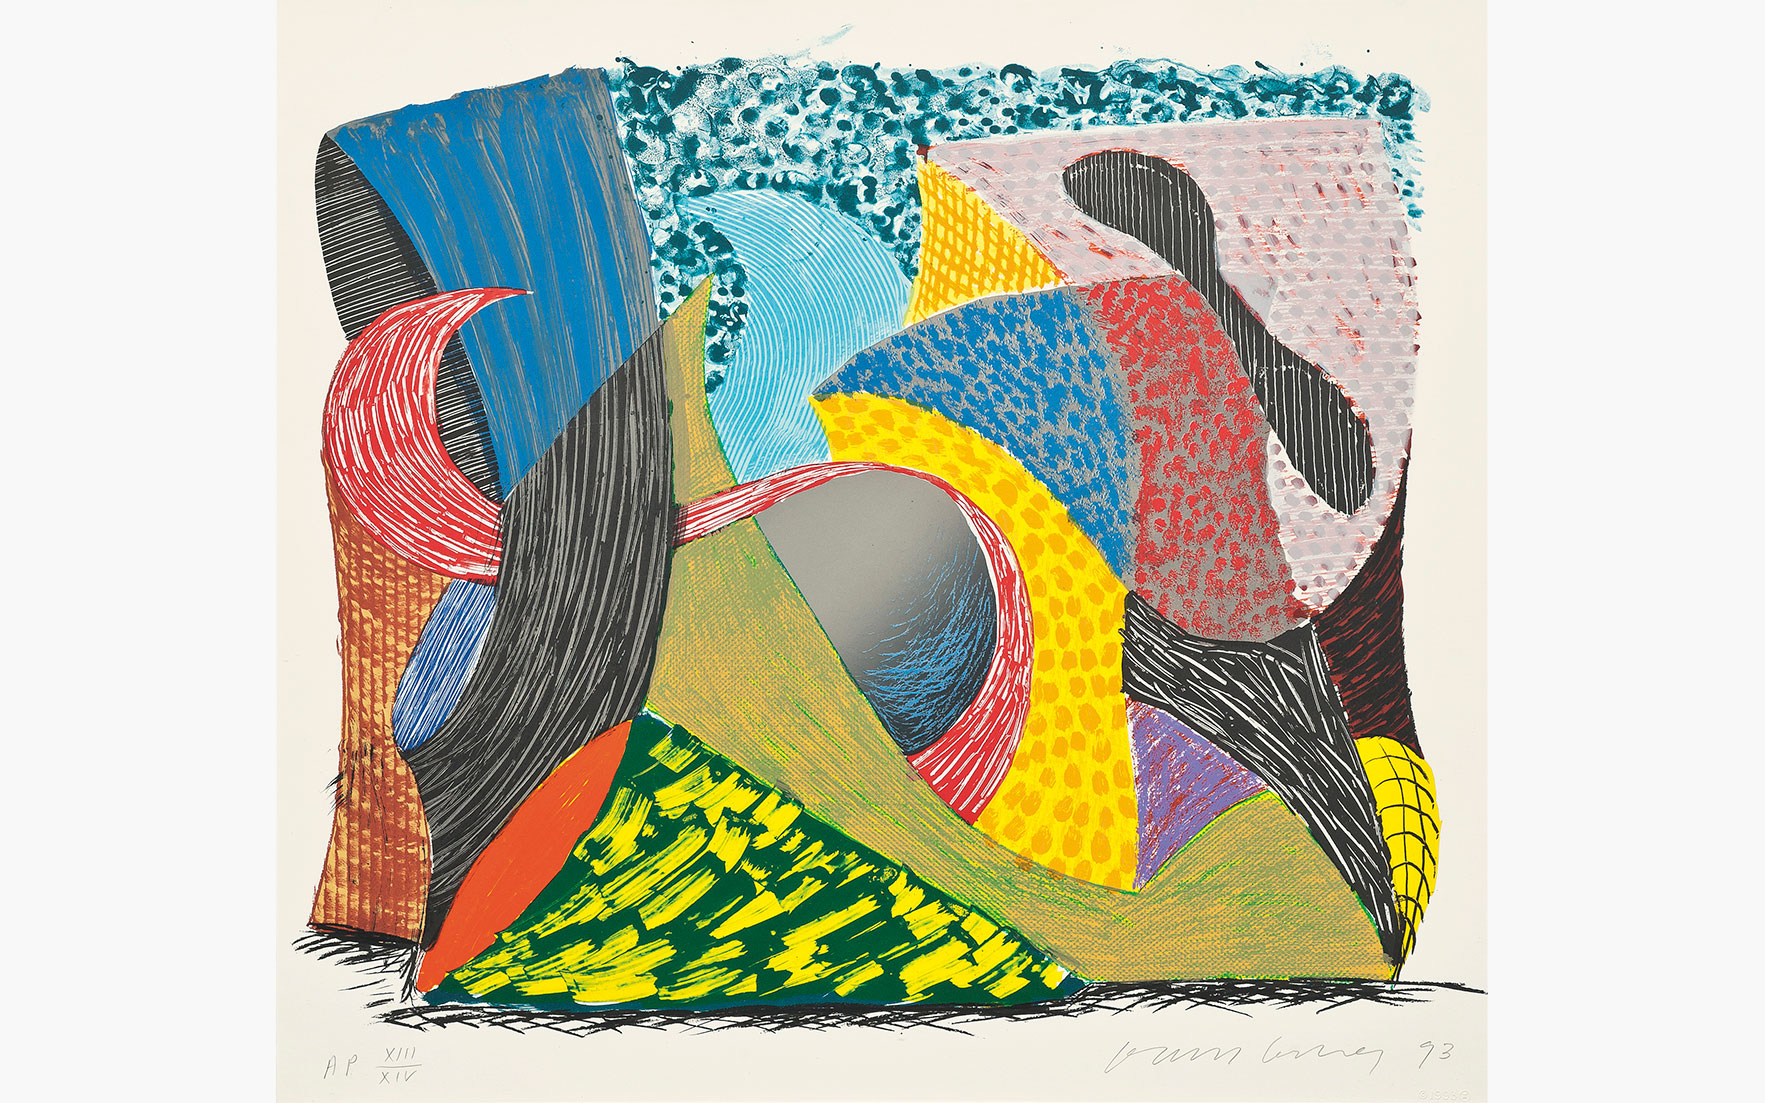 Prints by Picasso, Hockney and Bacon for under £10,000 | Christie's